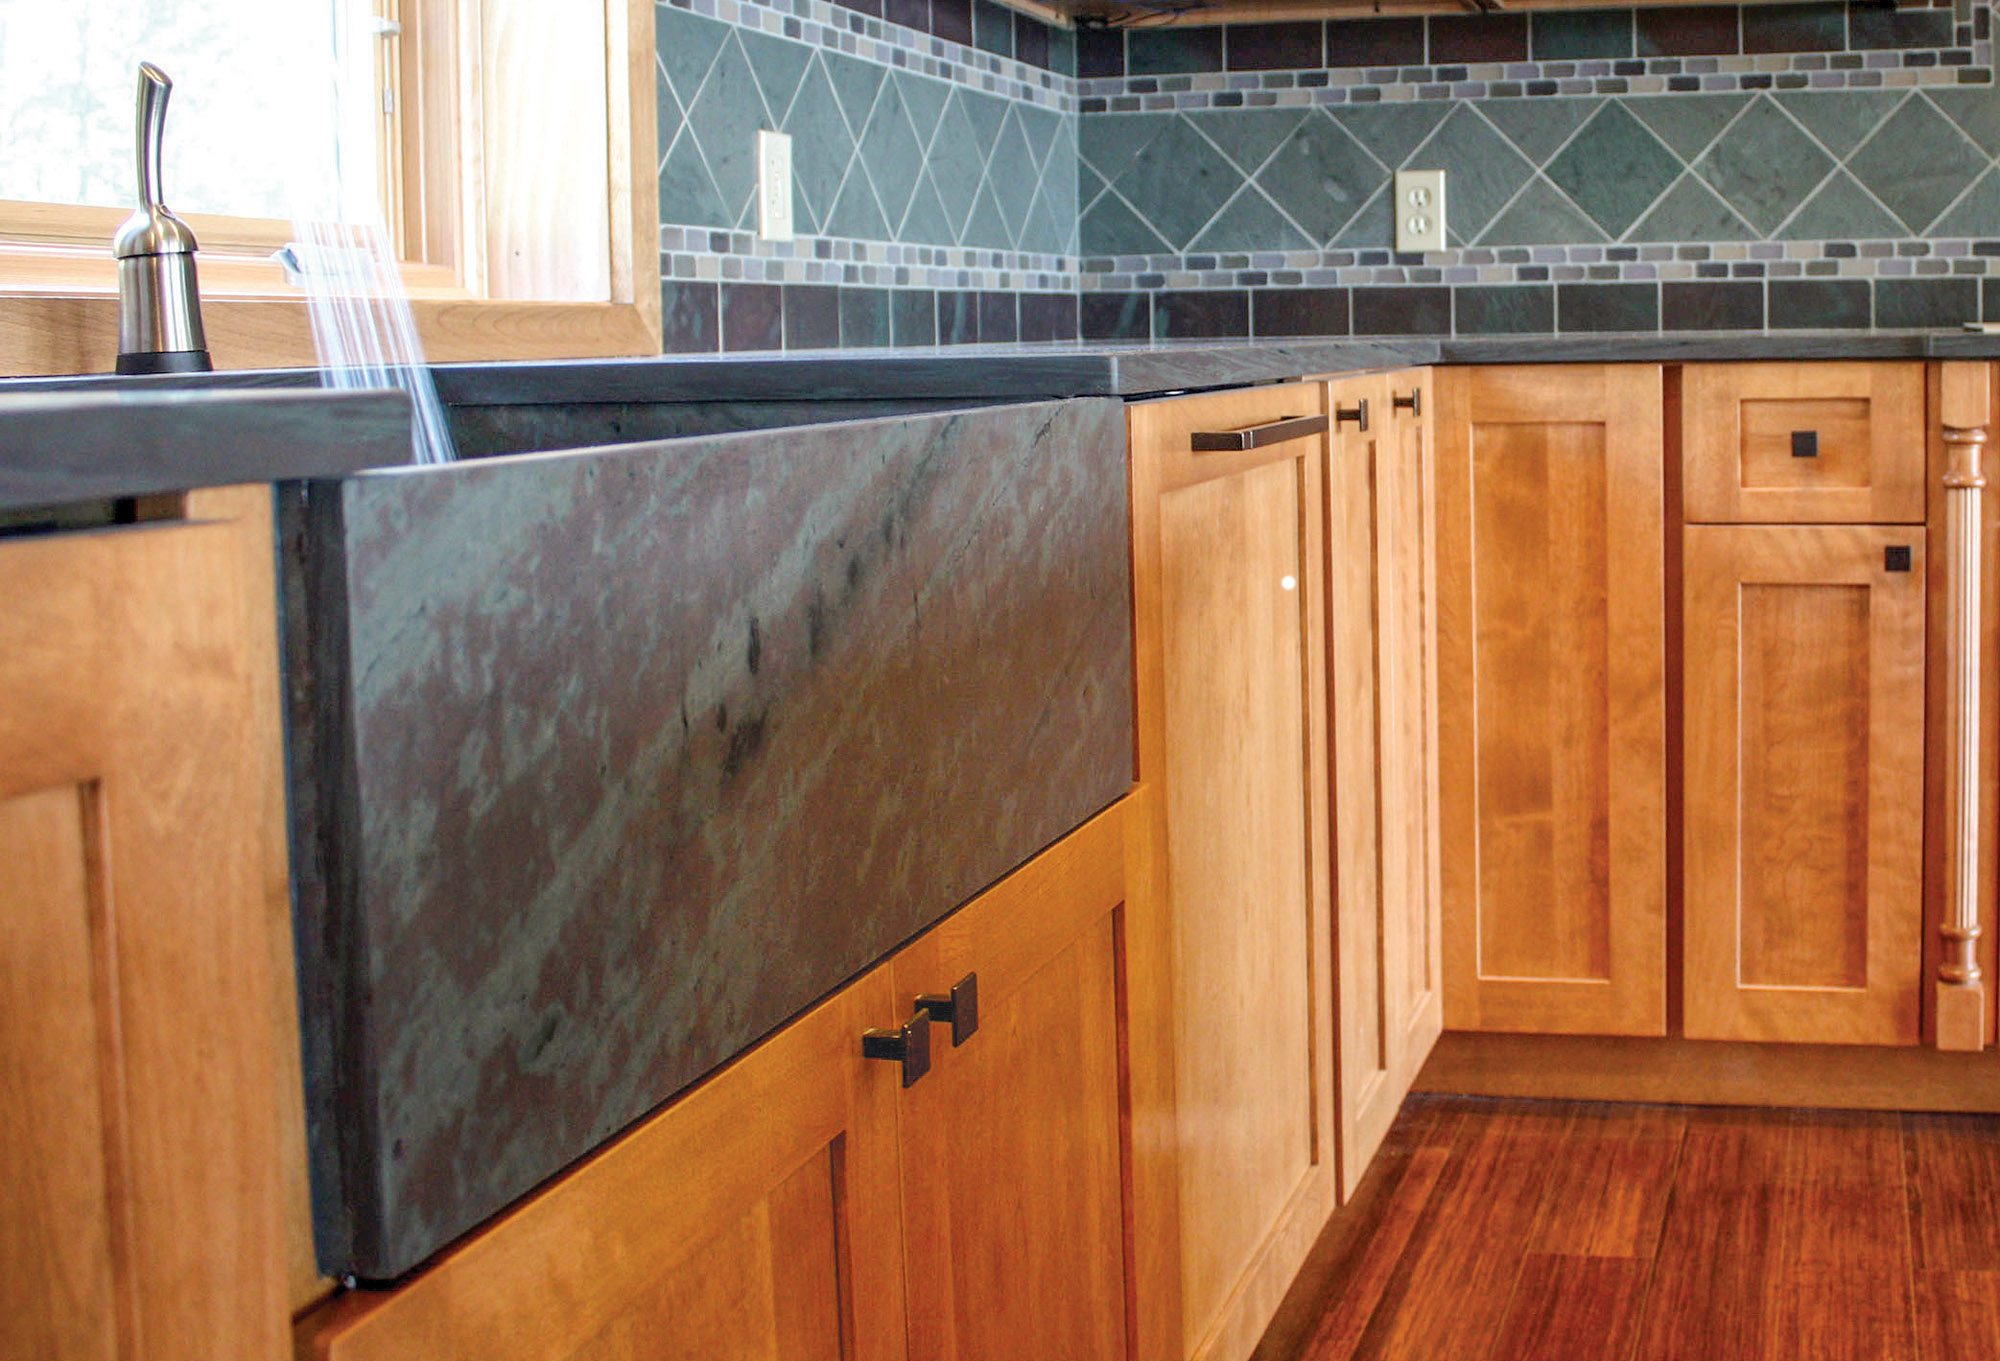 sink fabricated from Northeastern mottled green slate, by Sheldon Slate.